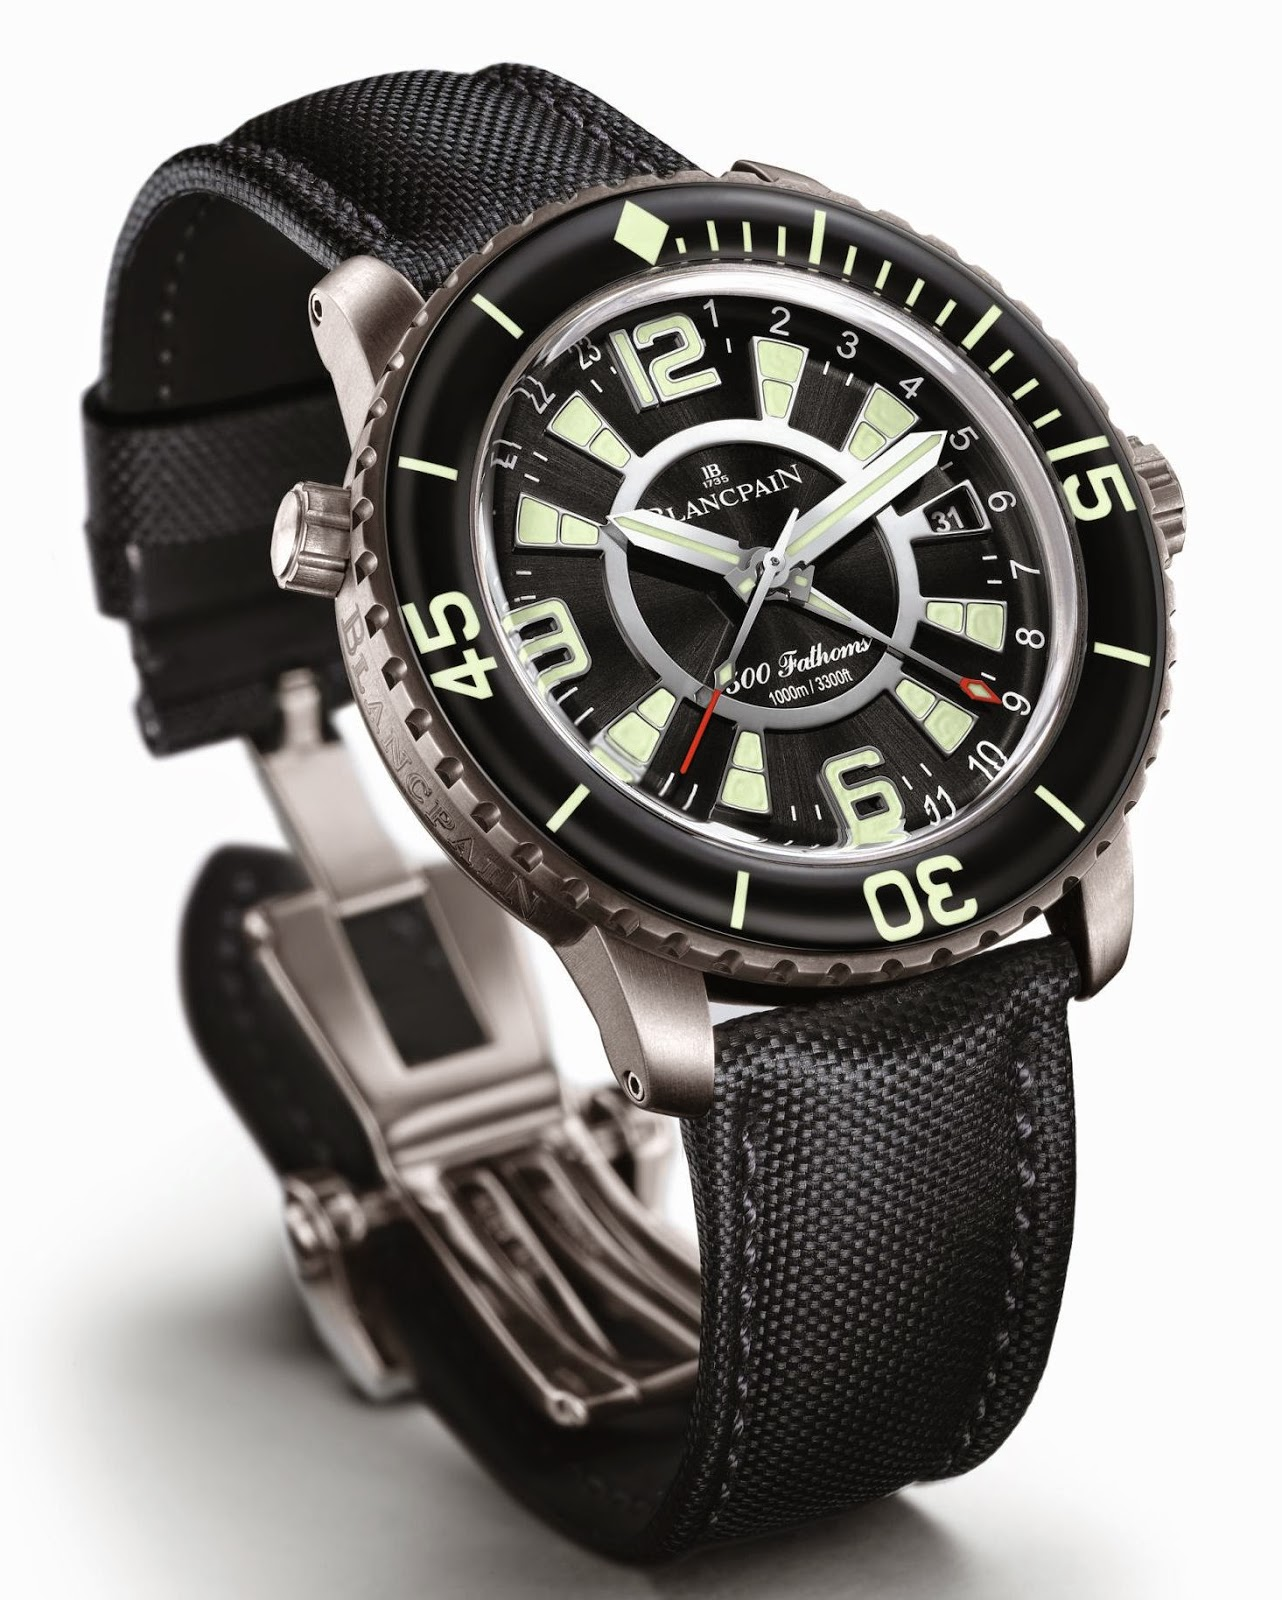 Blancpain 500 Fathoms GMT copy watch